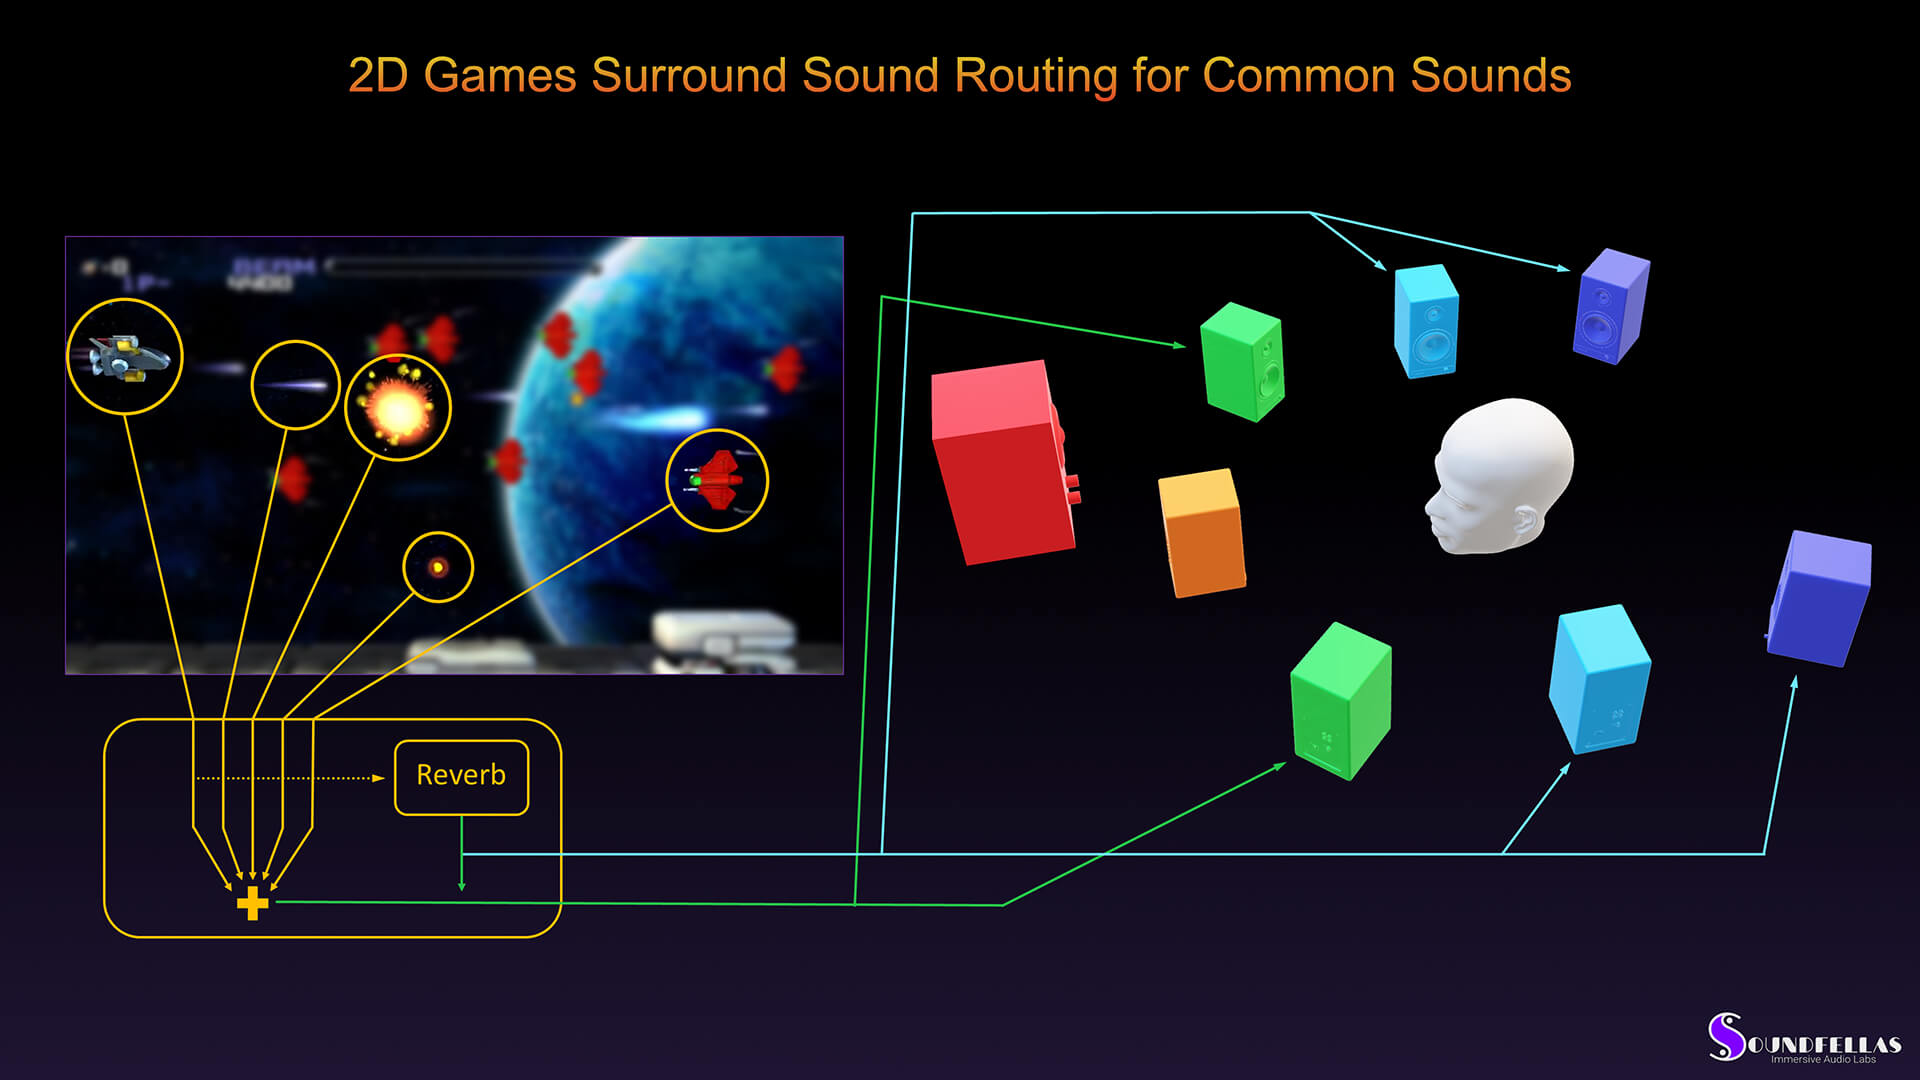 What 2D game developers fear about surround sound and why you should do it anyway page's image titled 2D game surround sound routing for common sounds